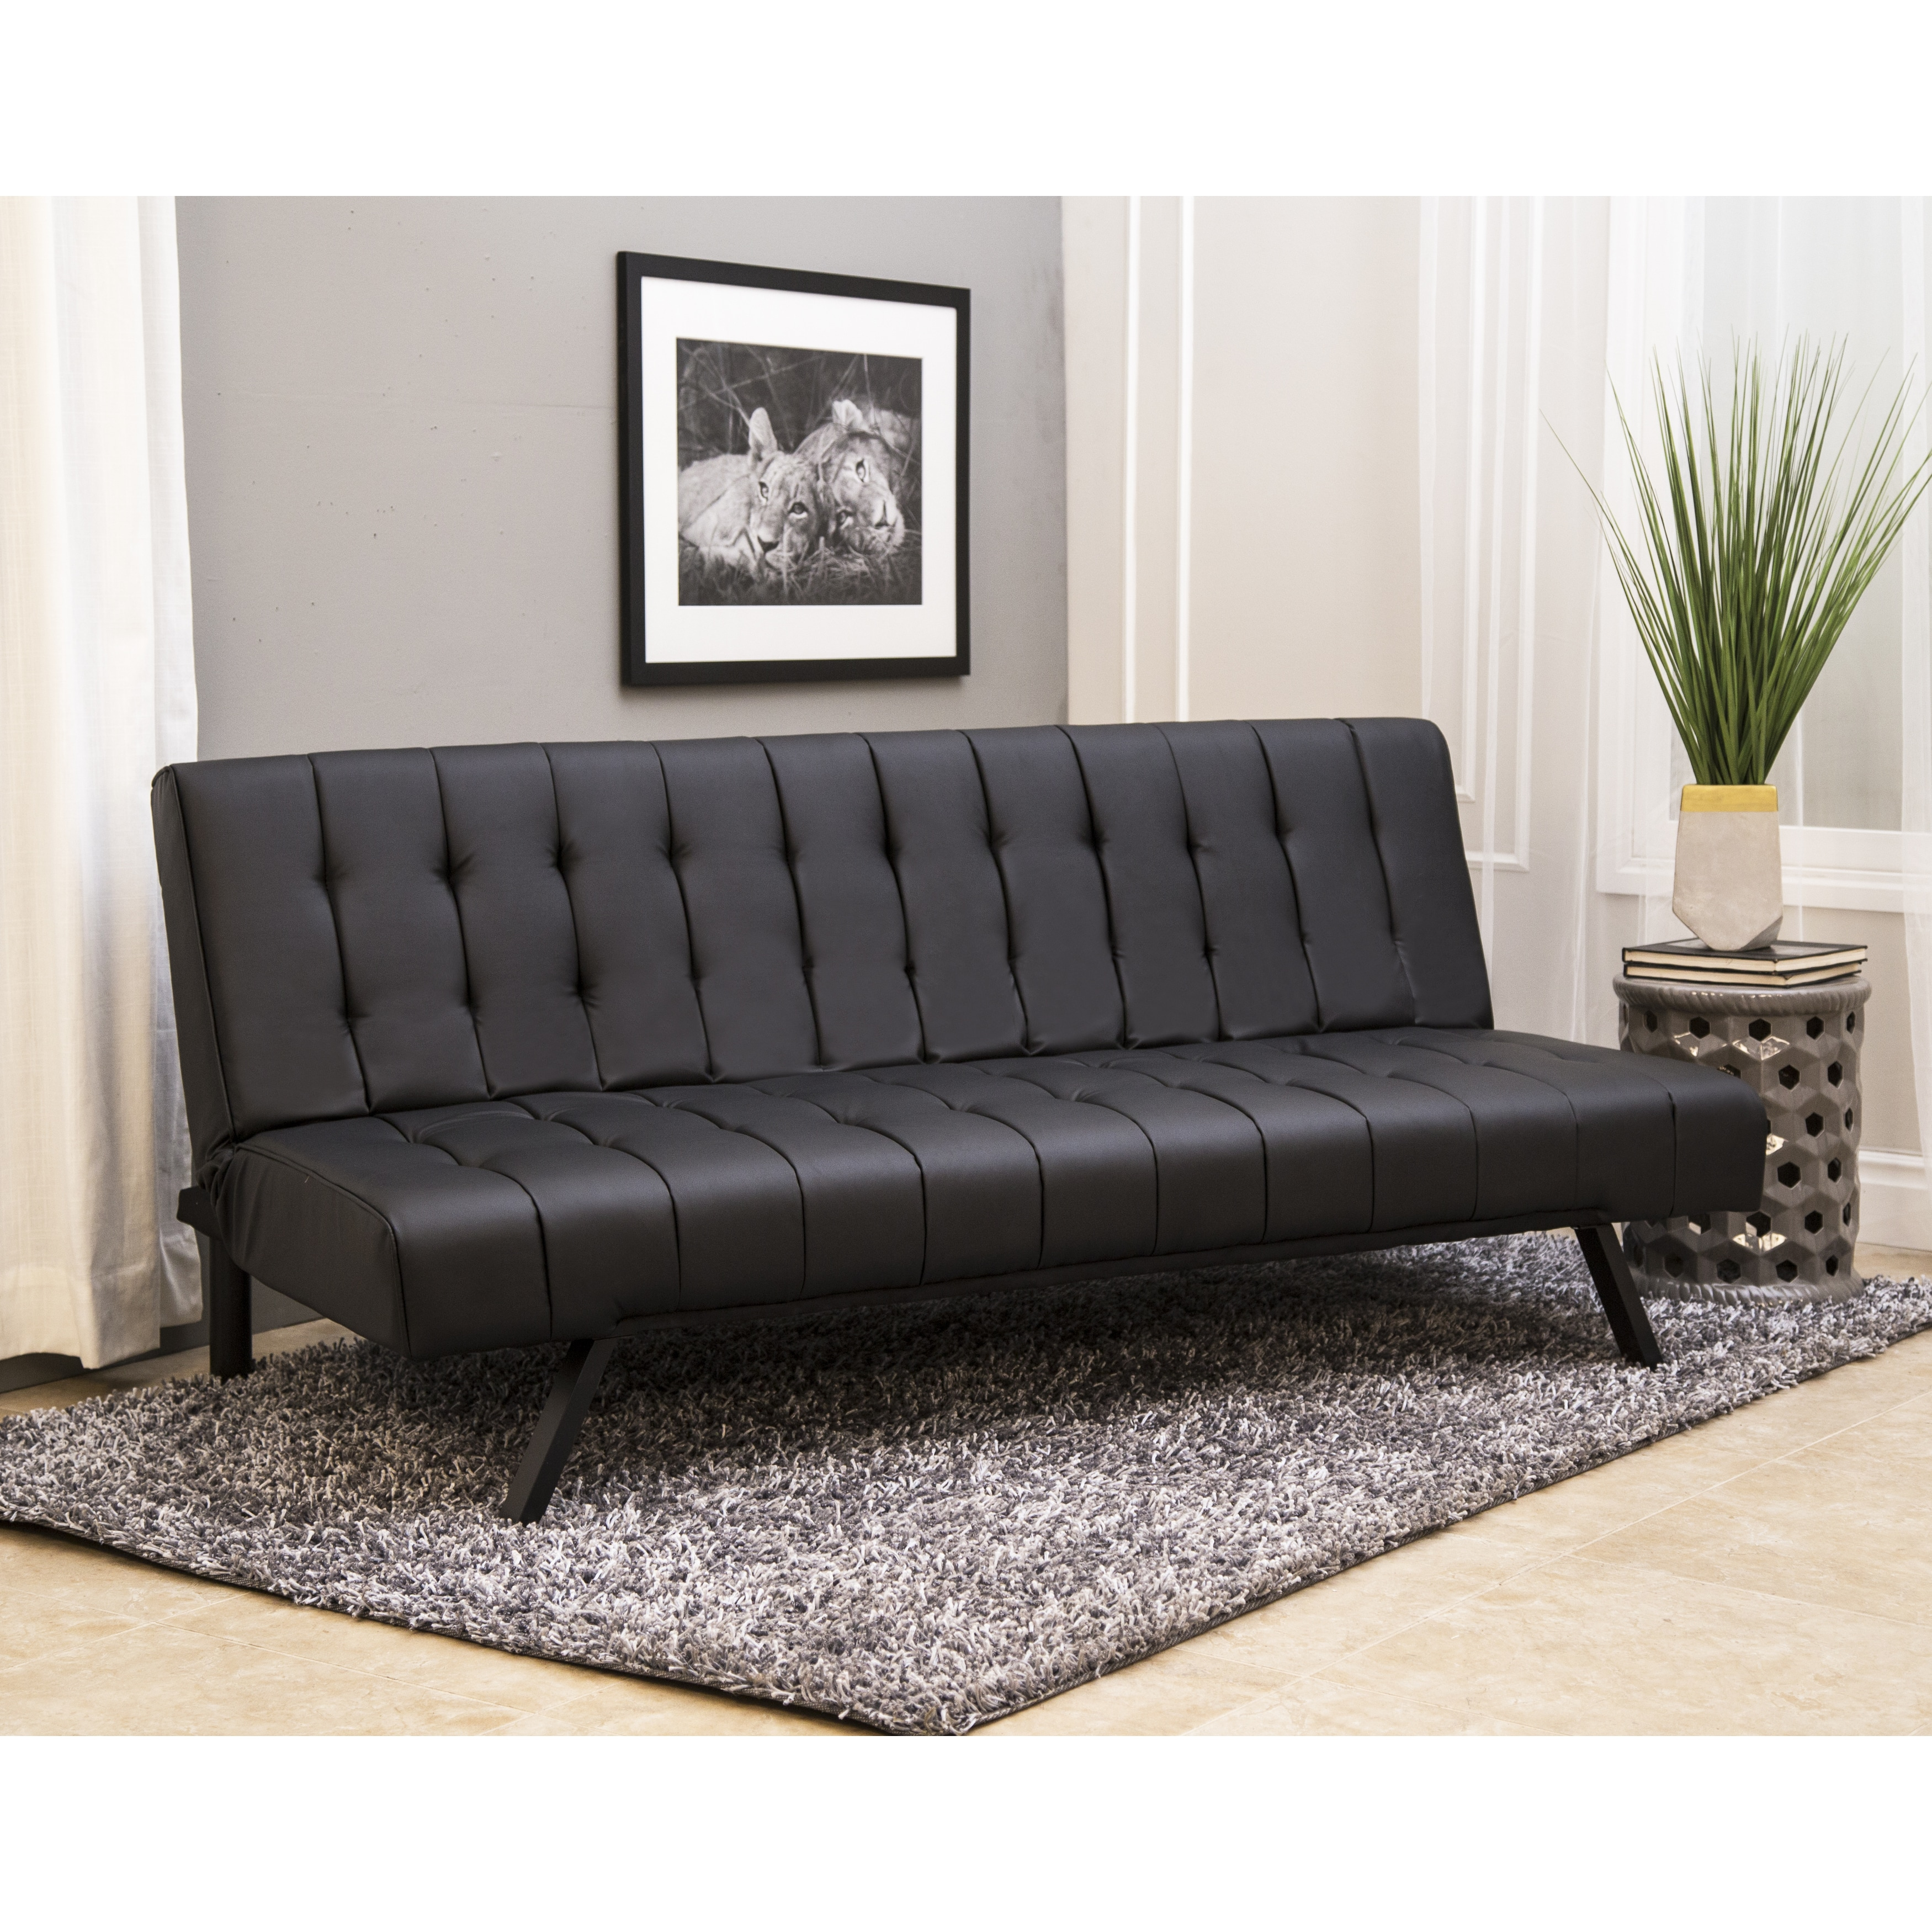 shop abbyson milan futon sleeper sofa bed on sale free shipping today overstock com 9922882